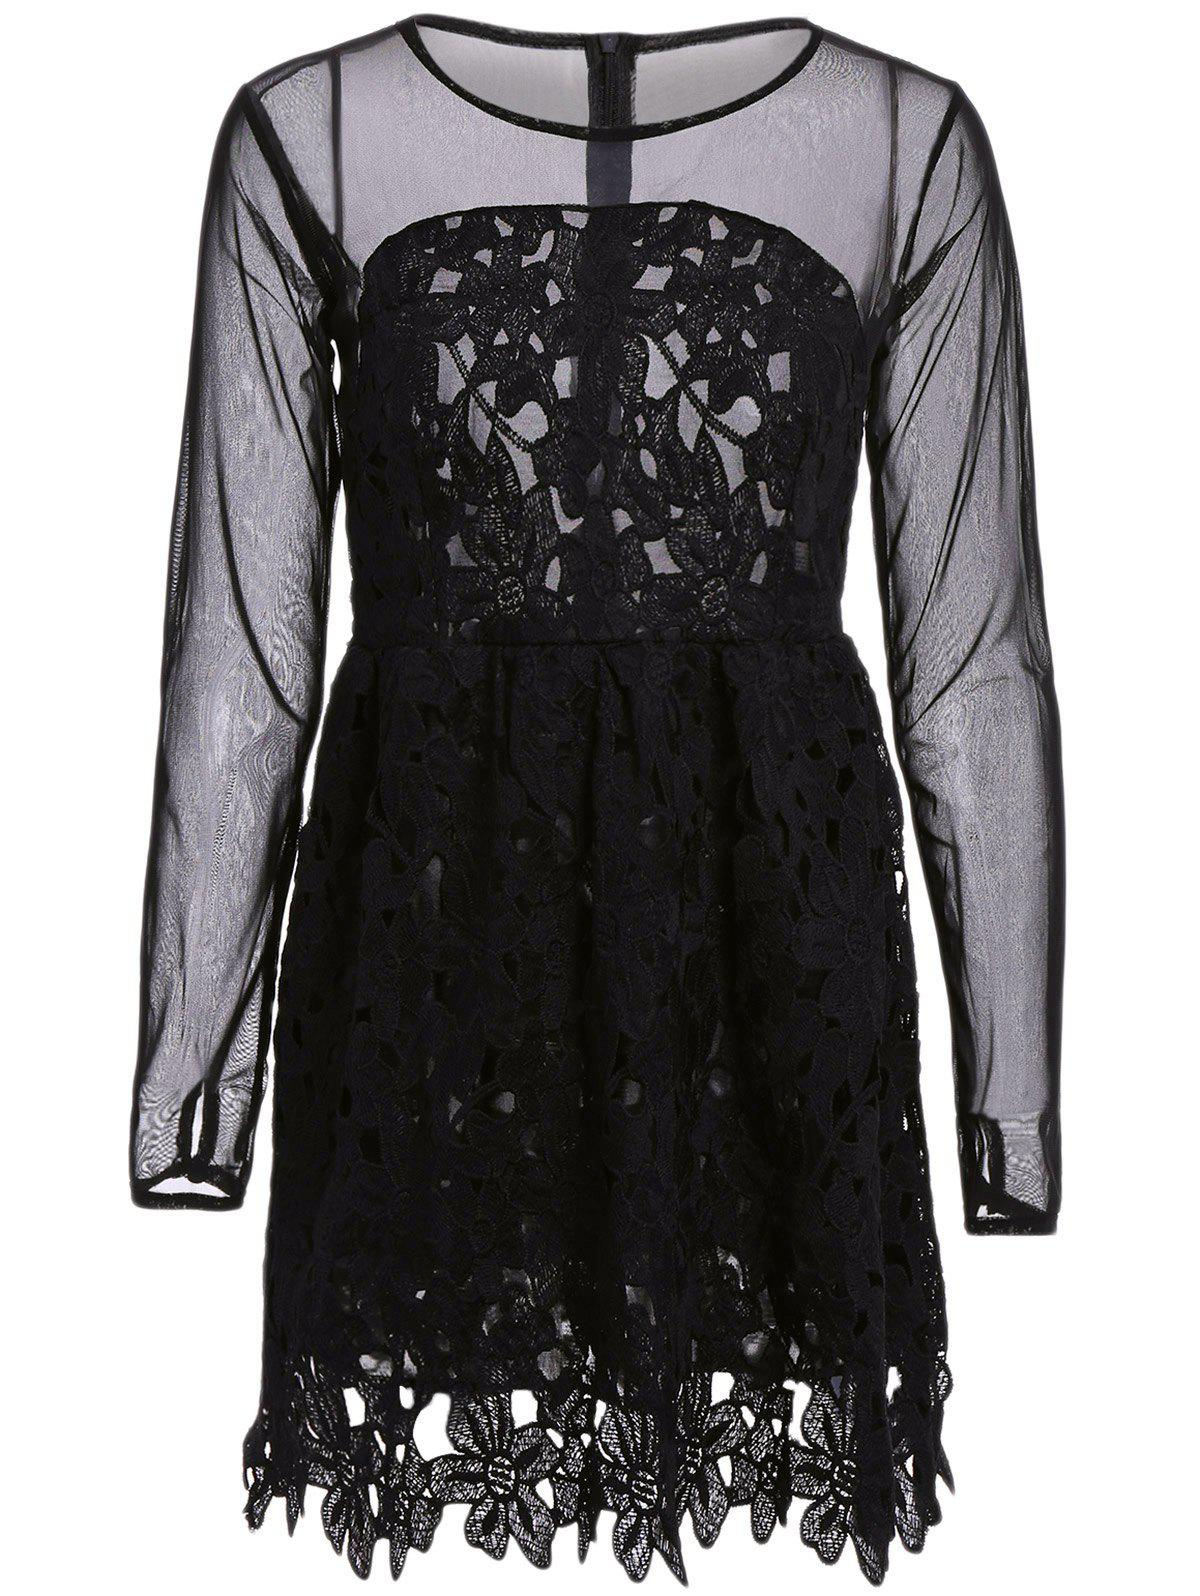 Best Stylish Round Collar Lace Floral Embroidery Long Sleeve Women's Dress